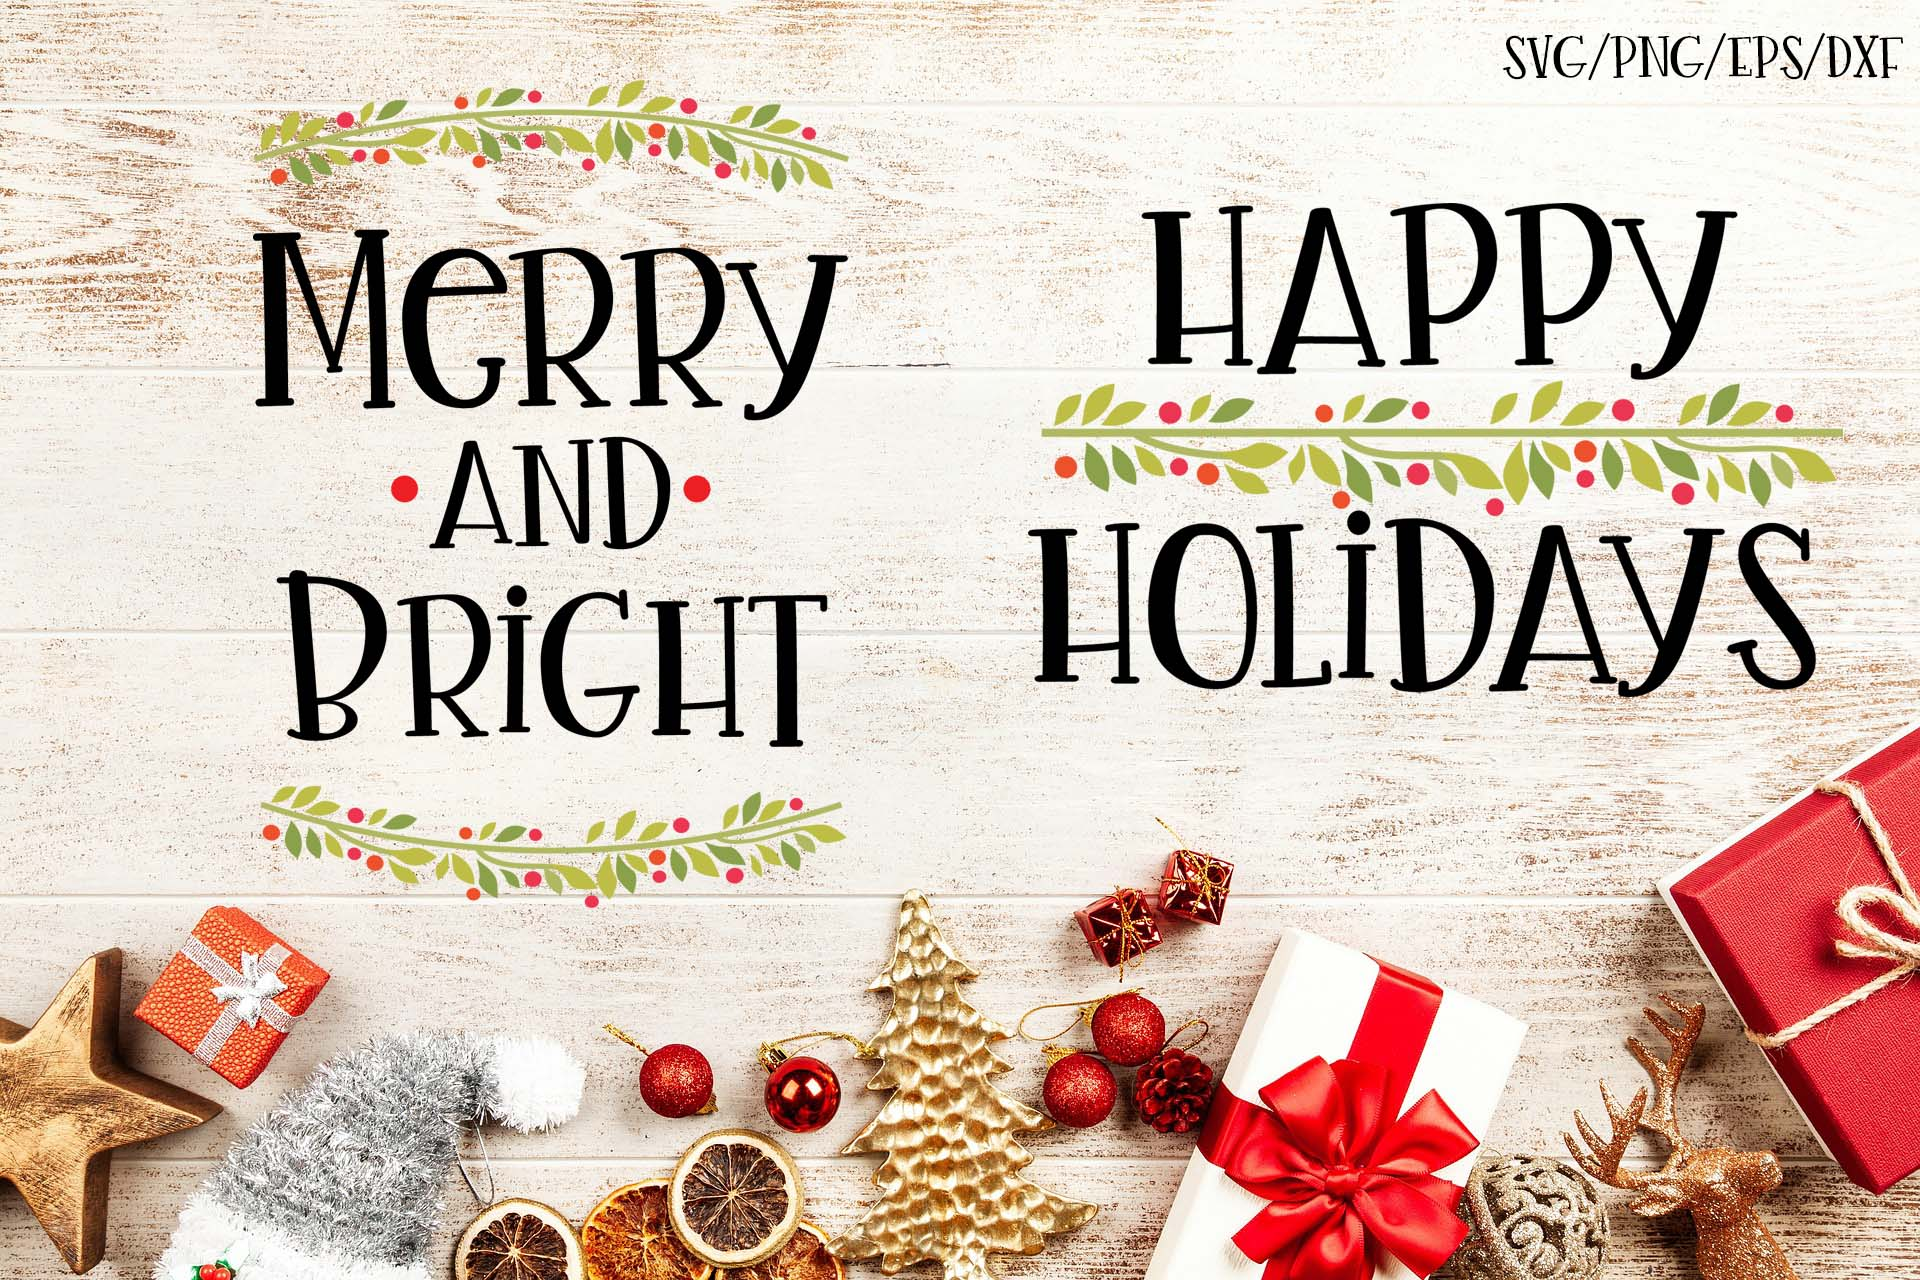 Download Free Happy Holidays Set Of 2 Christmas Svgs Graphic By Sheryl Holst for Cricut Explore, Silhouette and other cutting machines.